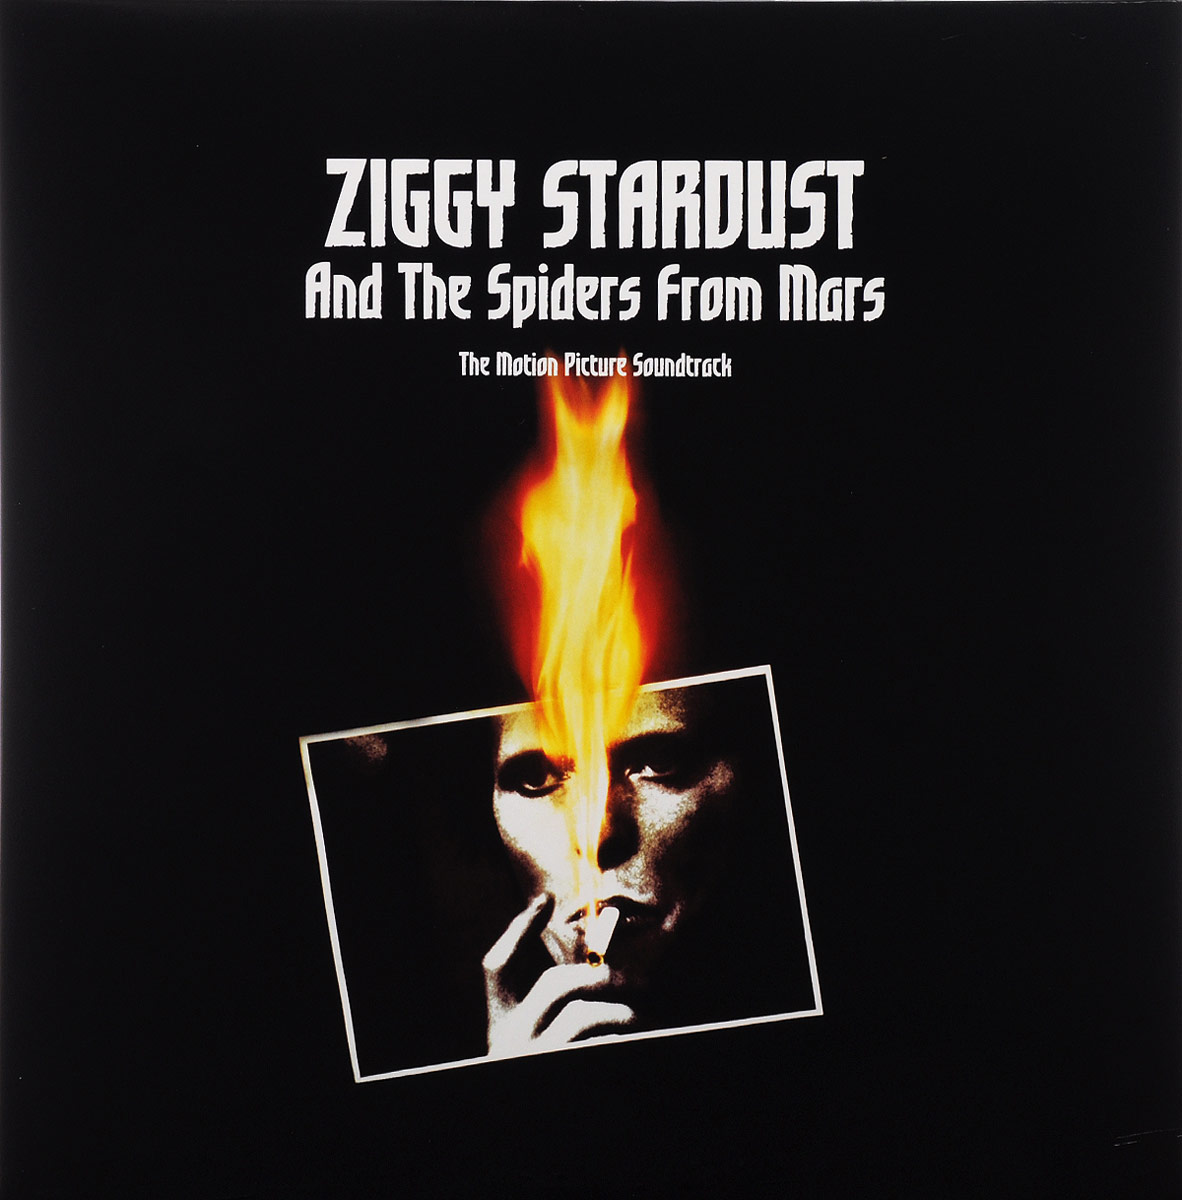 Дэвид Боуи Ziggy Stardust And The Spiders From Mars The Motion Picture Soundtrack (2 LP) the spiders from arts толстовка